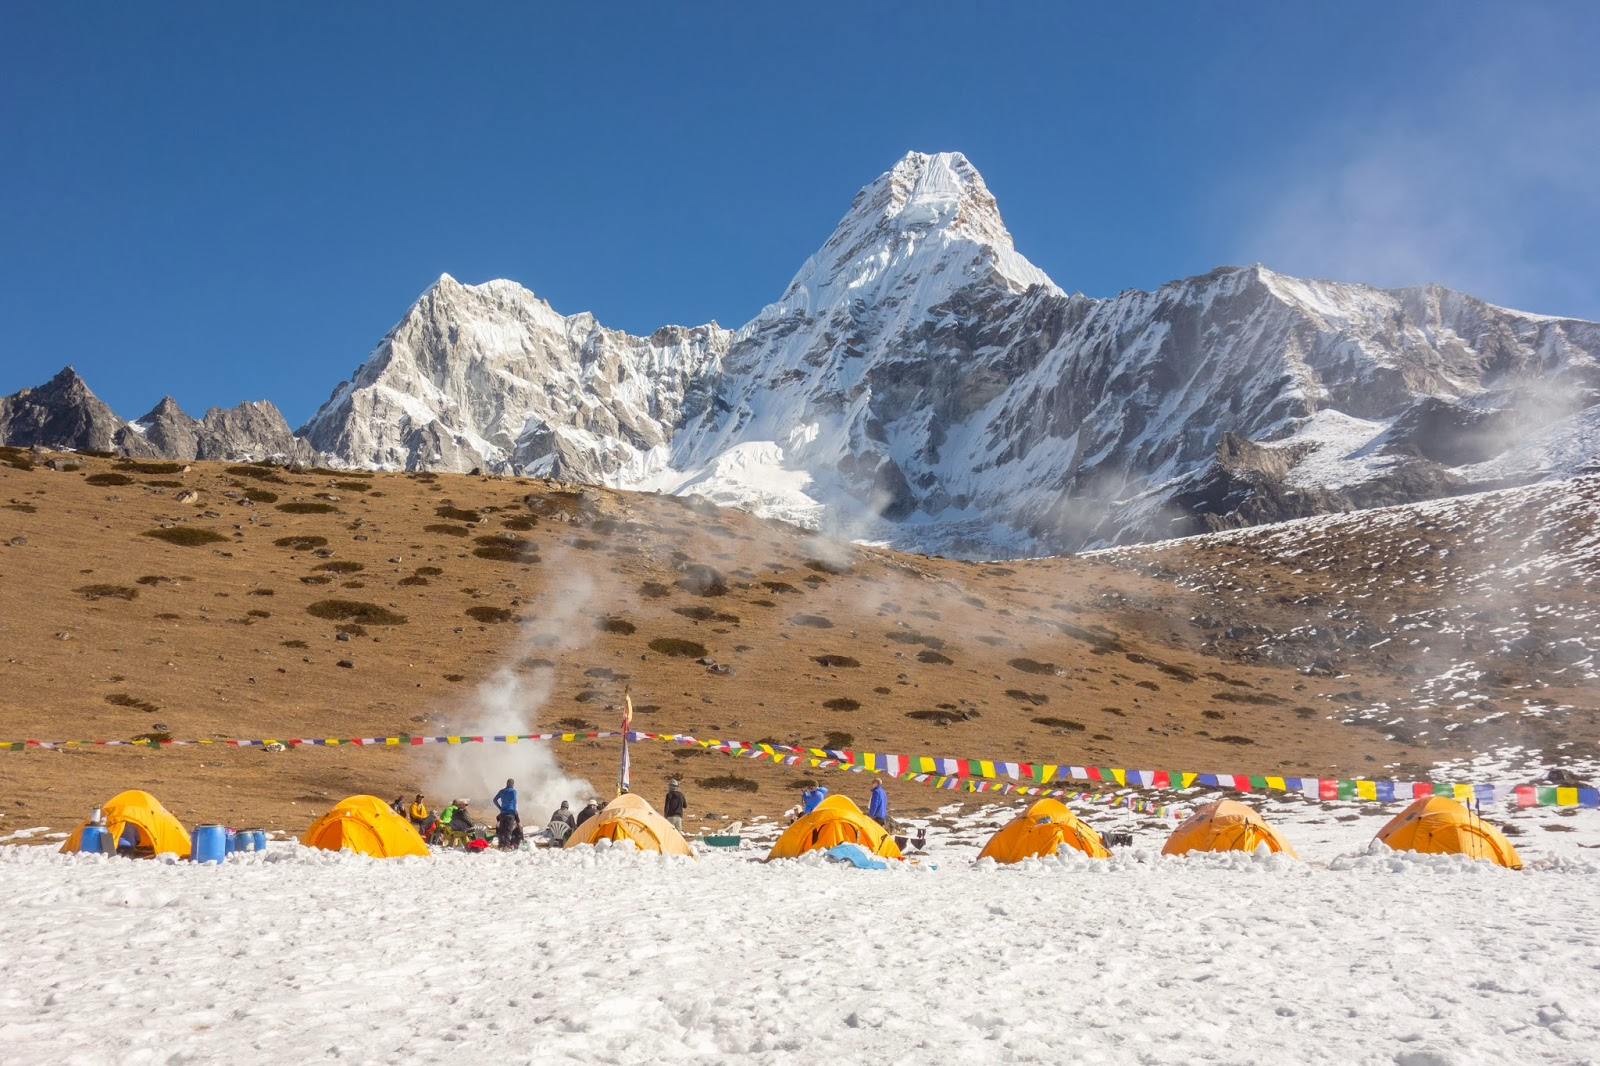 Ama Dablam Base Camp PujaAma Dablam Base Camp